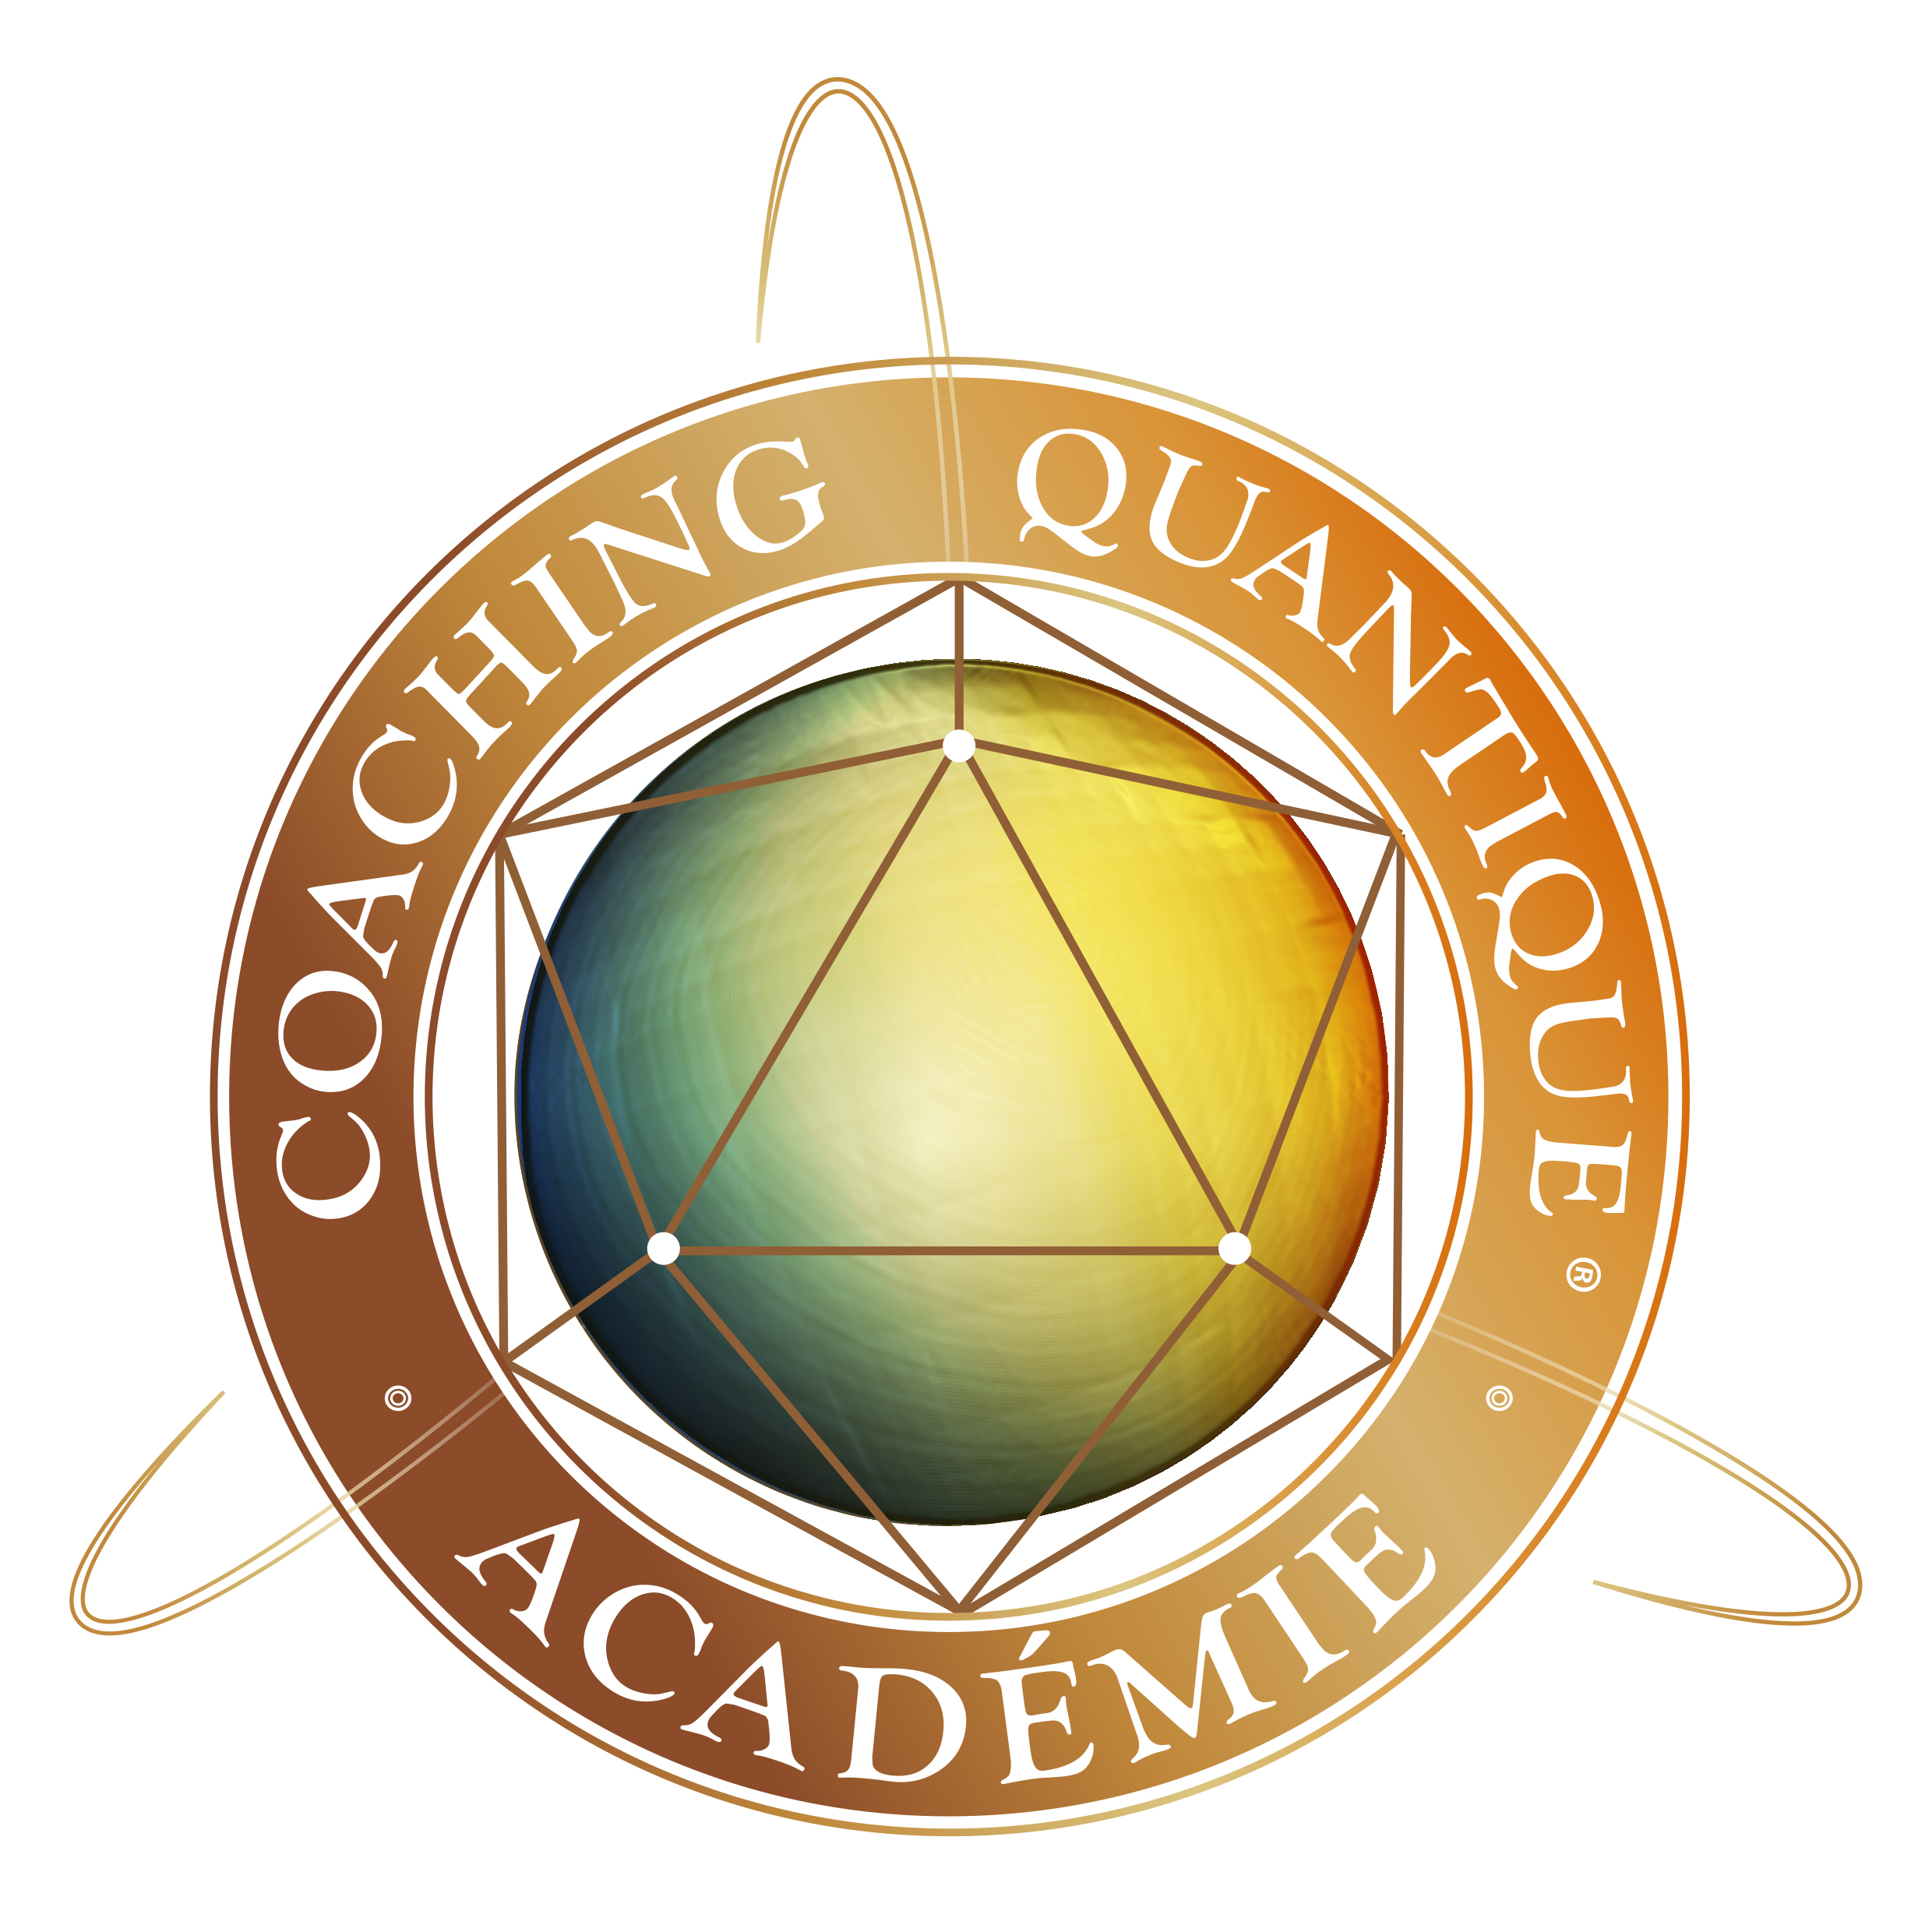 Academie de coaching quantique